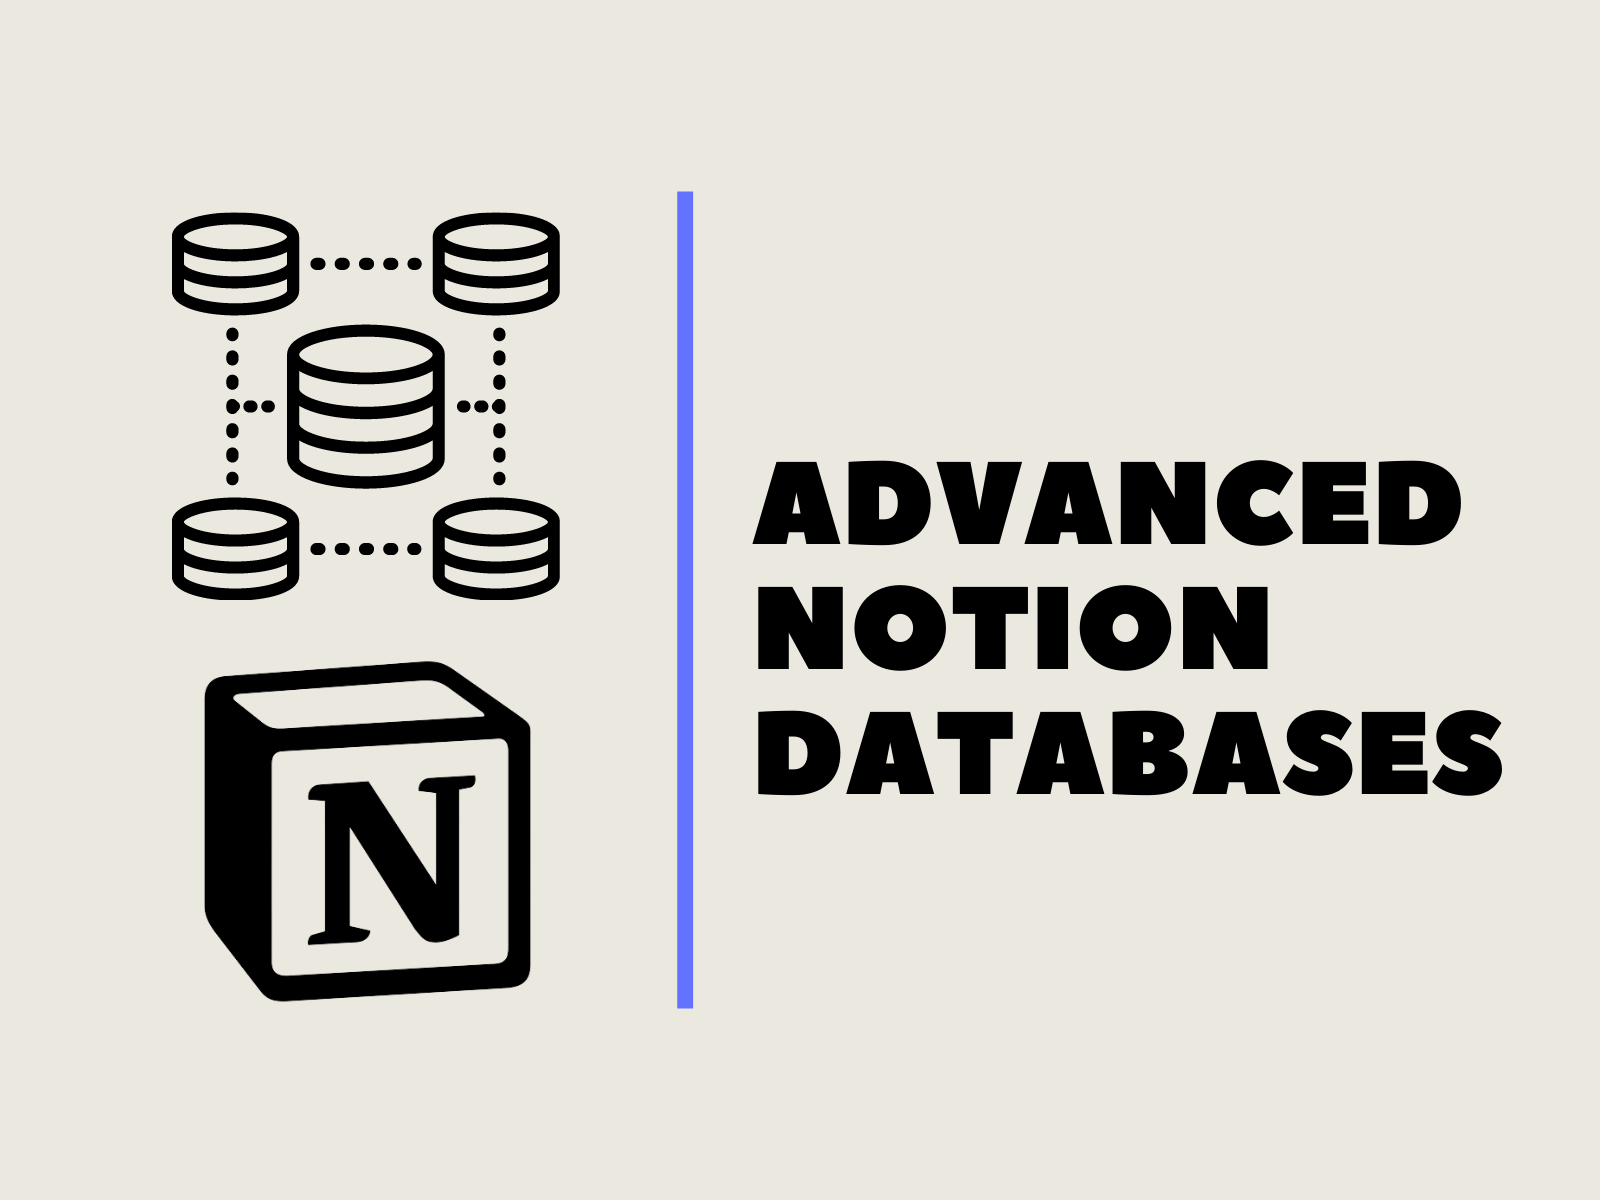 advanced notion databases